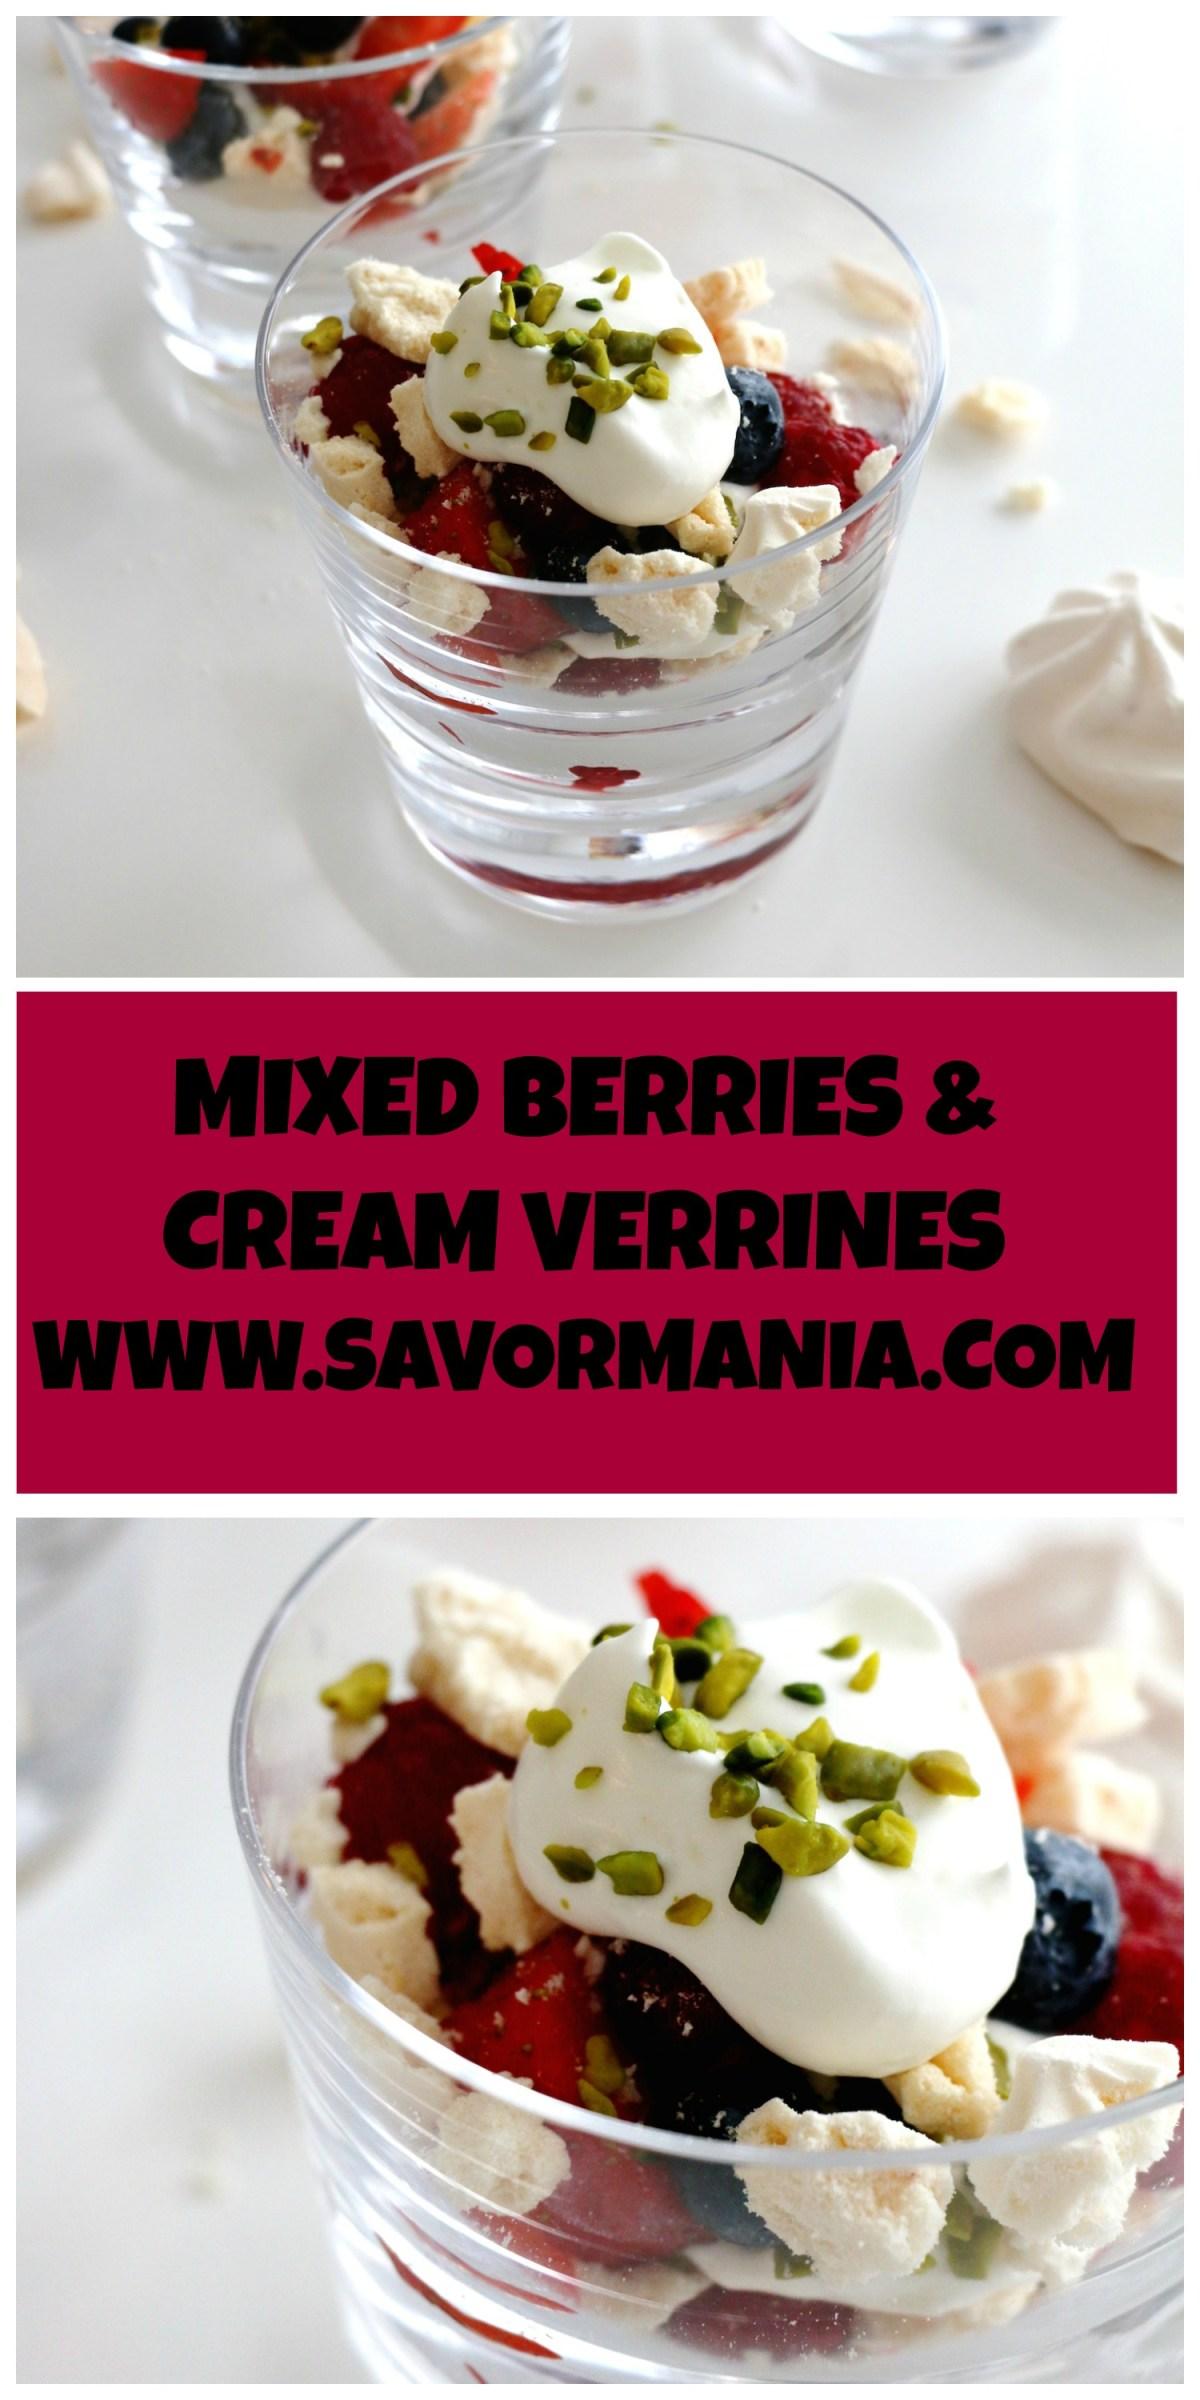 mixed berries & cream verringes | www.savormania.com